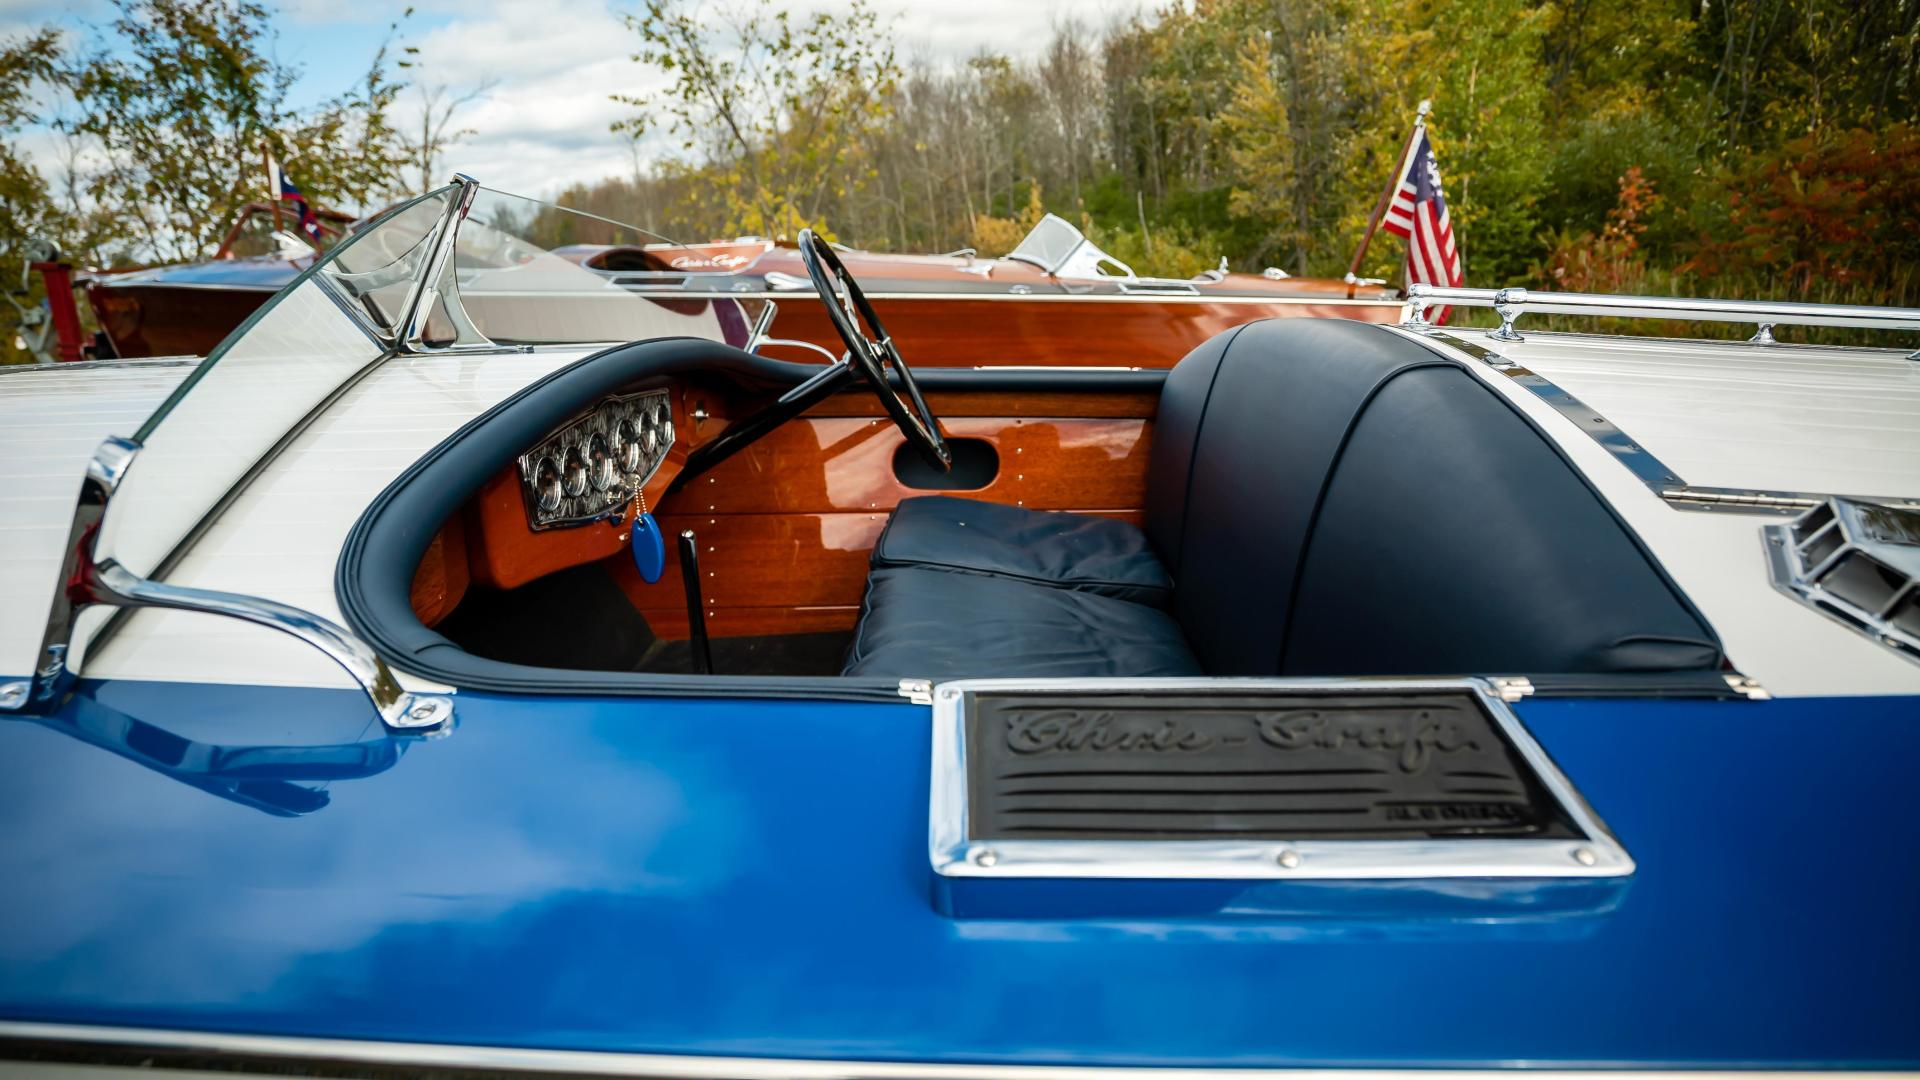 Chris-Craft-Special Race boat 1937 -Clayton-New York-United States-1546460 | Thumbnail